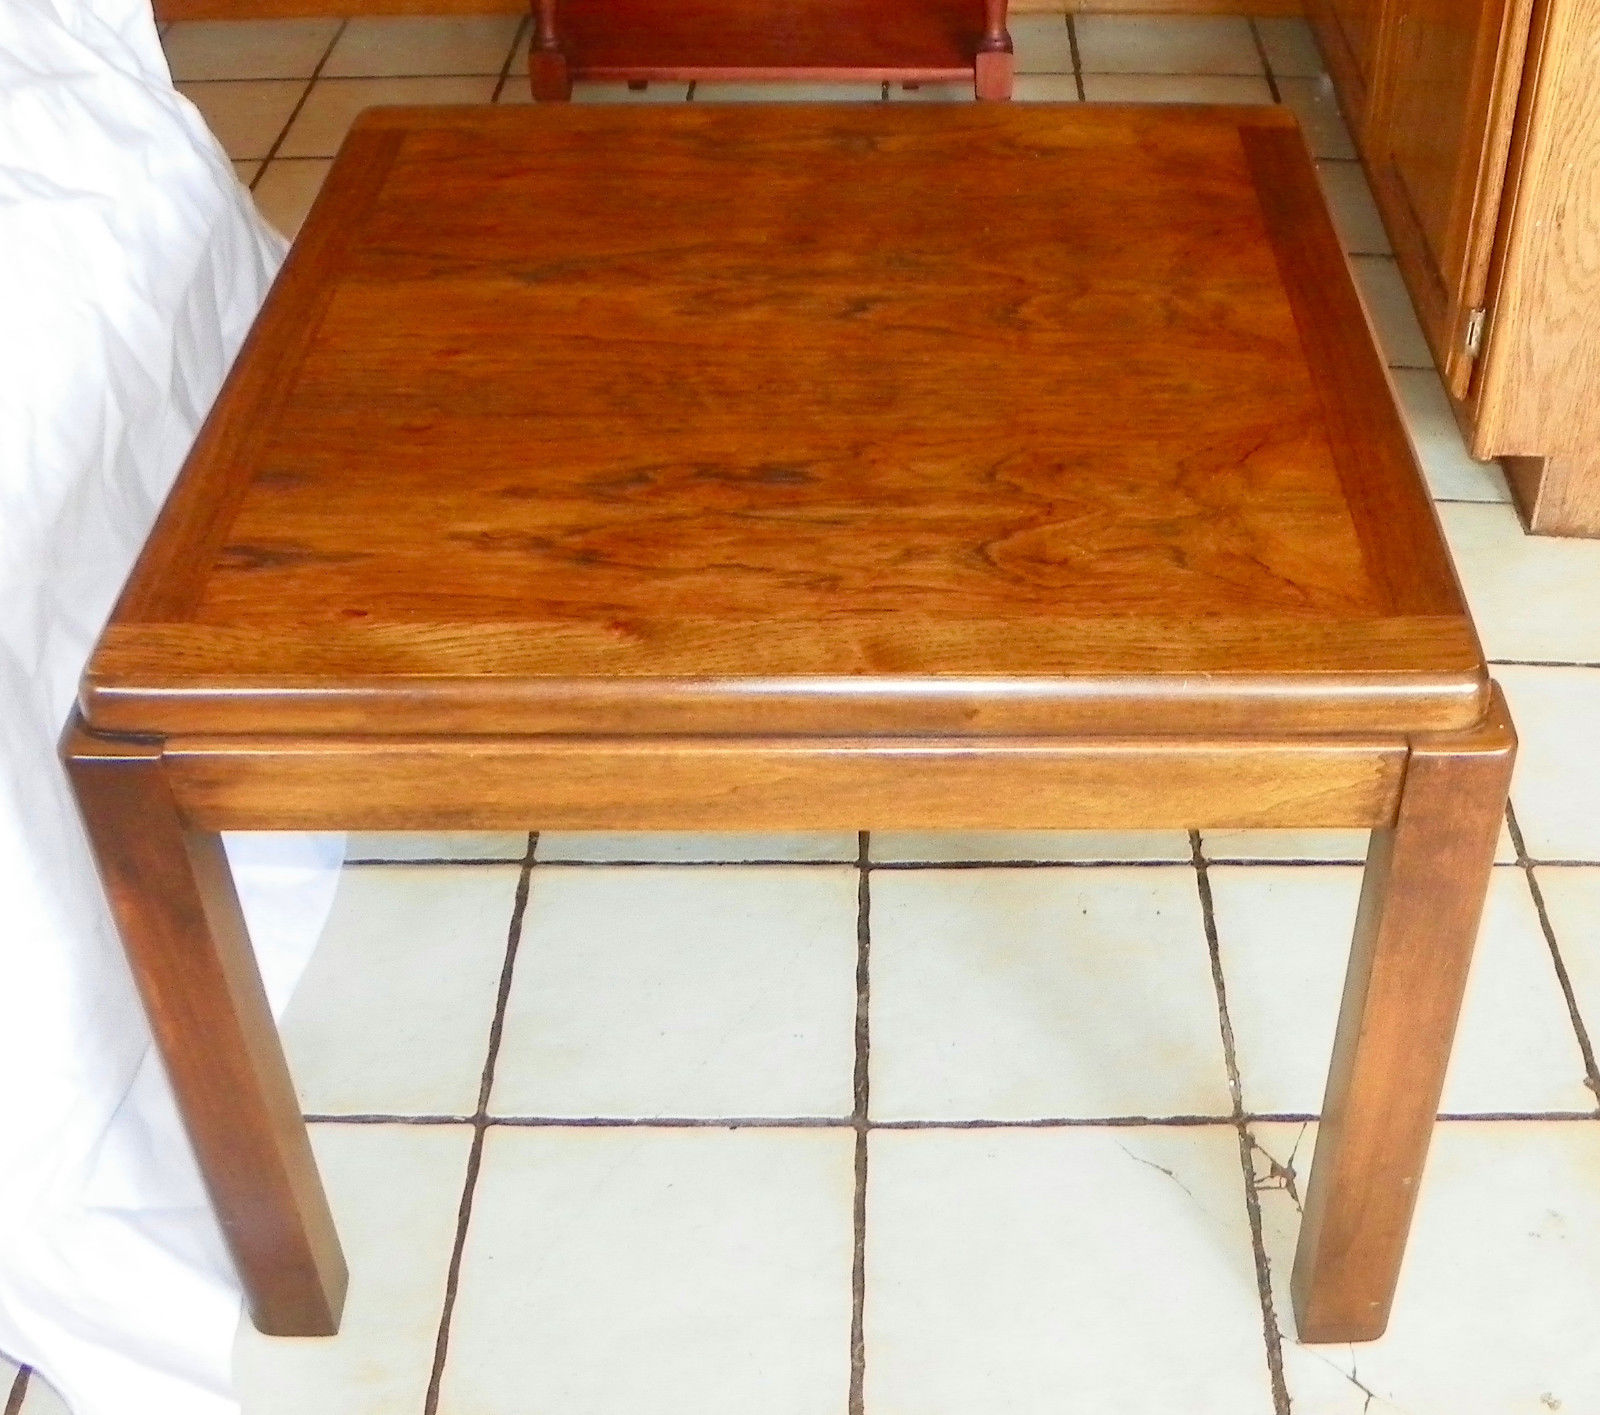 Pecan & Walnut Lamp Table / End Table by Lane